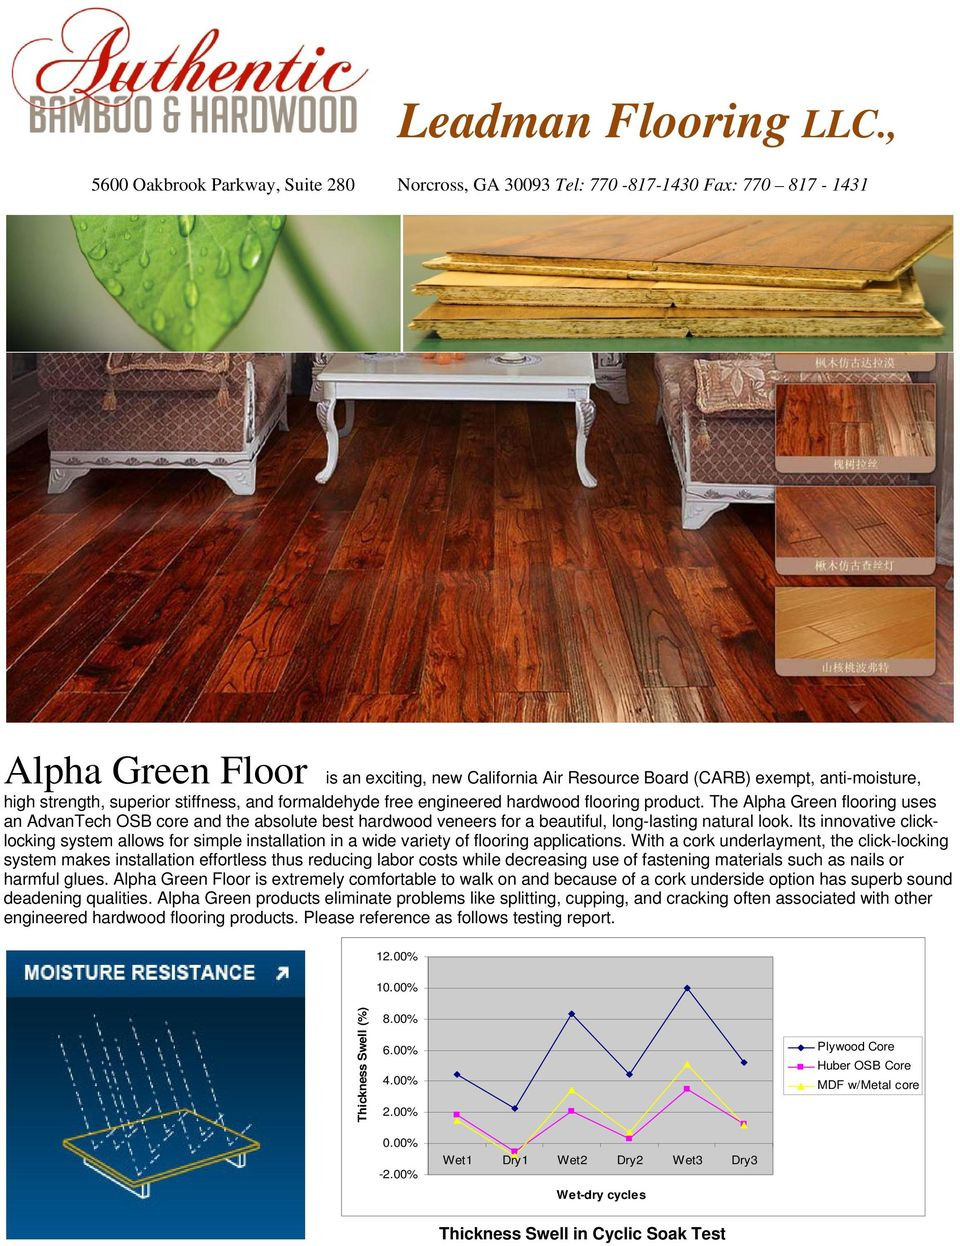 kahrs hardwood flooring reviews of leadman flooring llc pdf with regard to strength superior stiffness and formaldehyde free engineered hardwood flooring product